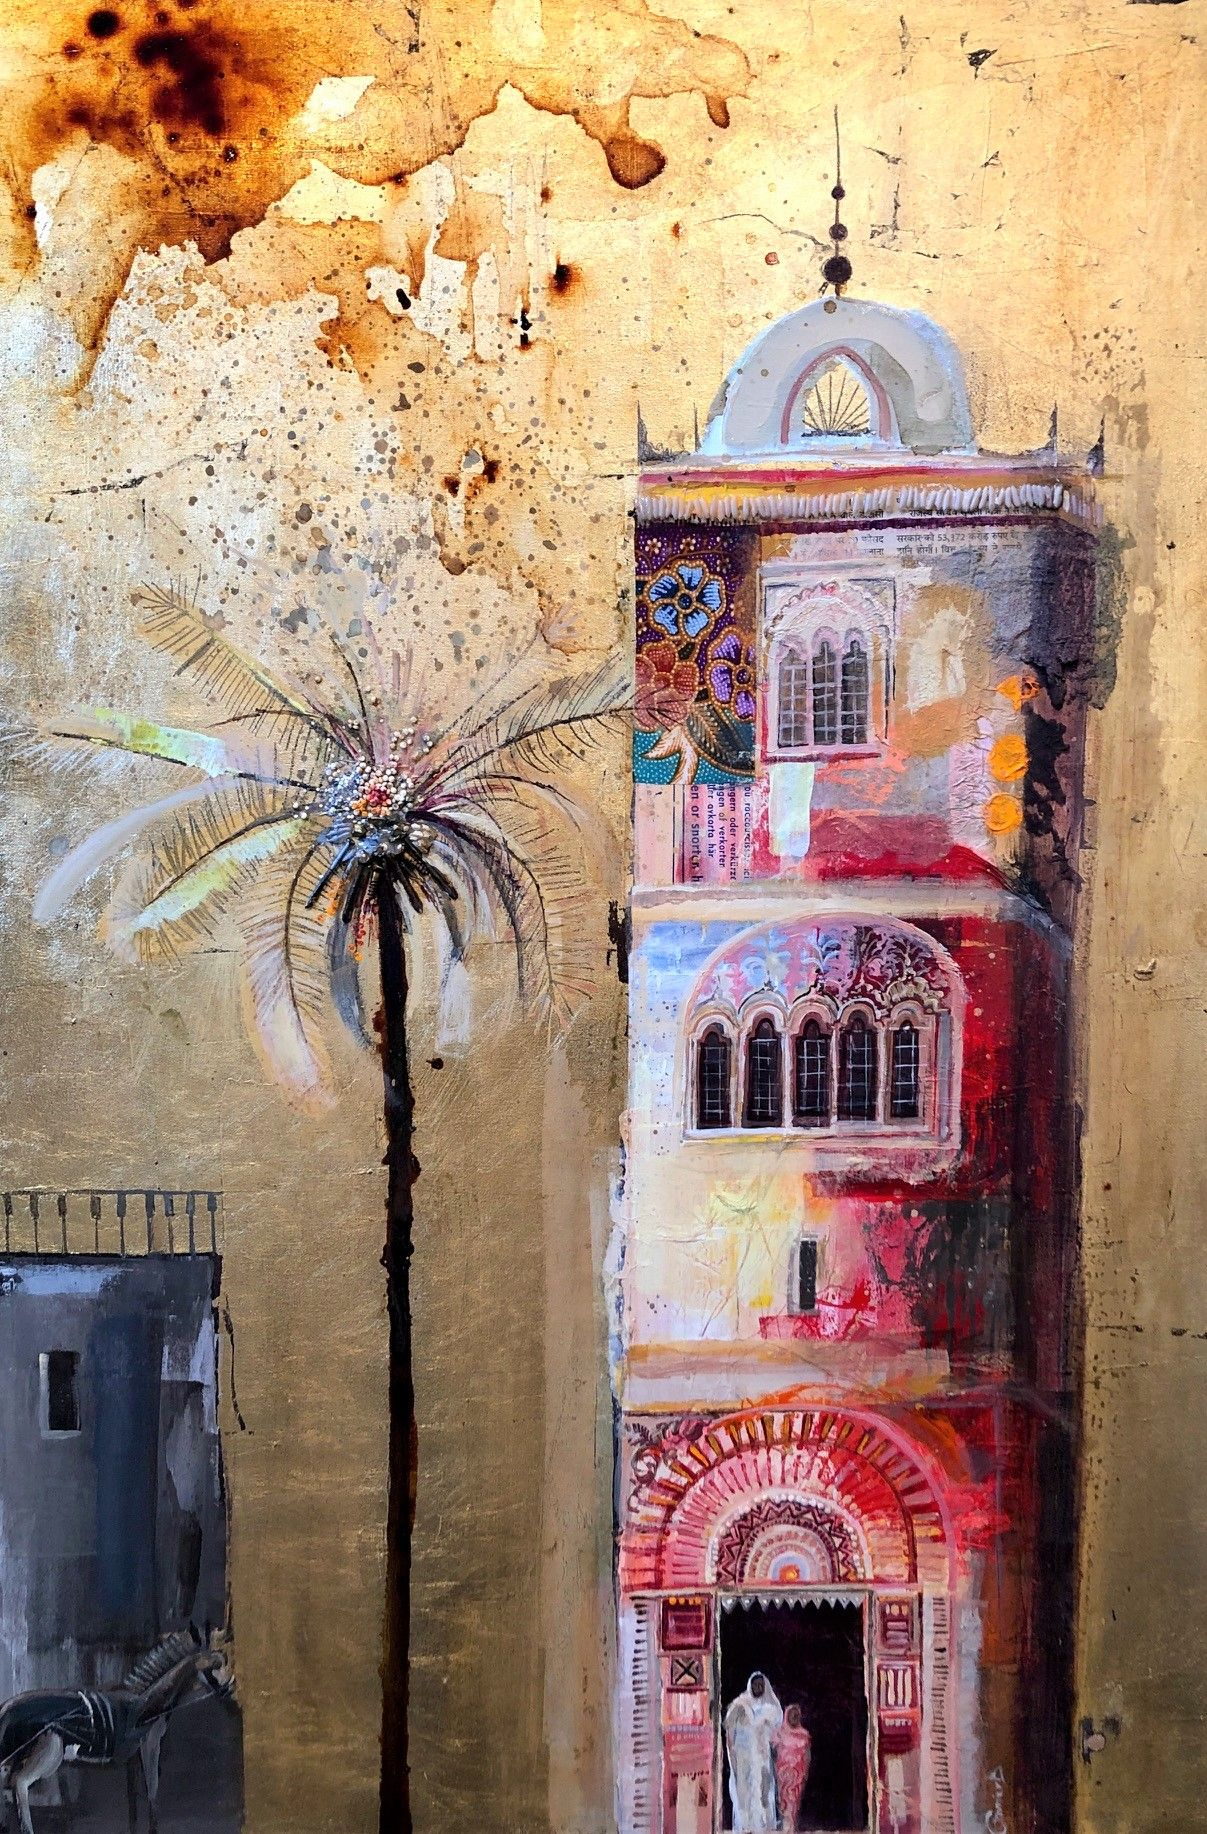 A Moment in Marrakech by Emmie van Biervliet